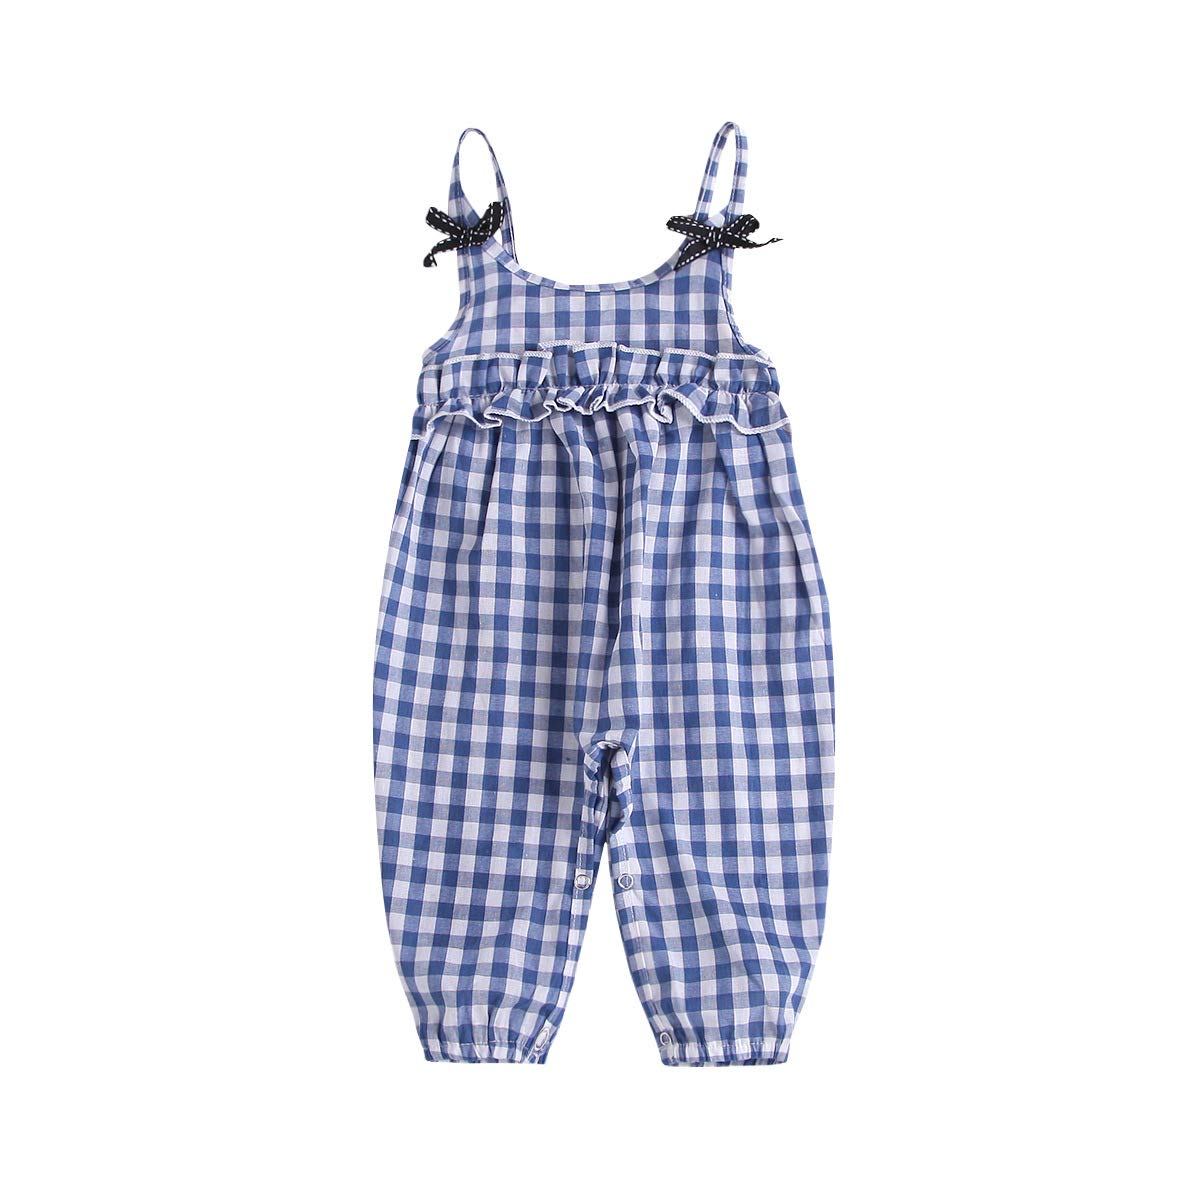 Toddler Baby Girls 100/% Cotton Cute Snap-up Straps Rompers Kid One Piece Jumpsuits Outfit Clothes Set